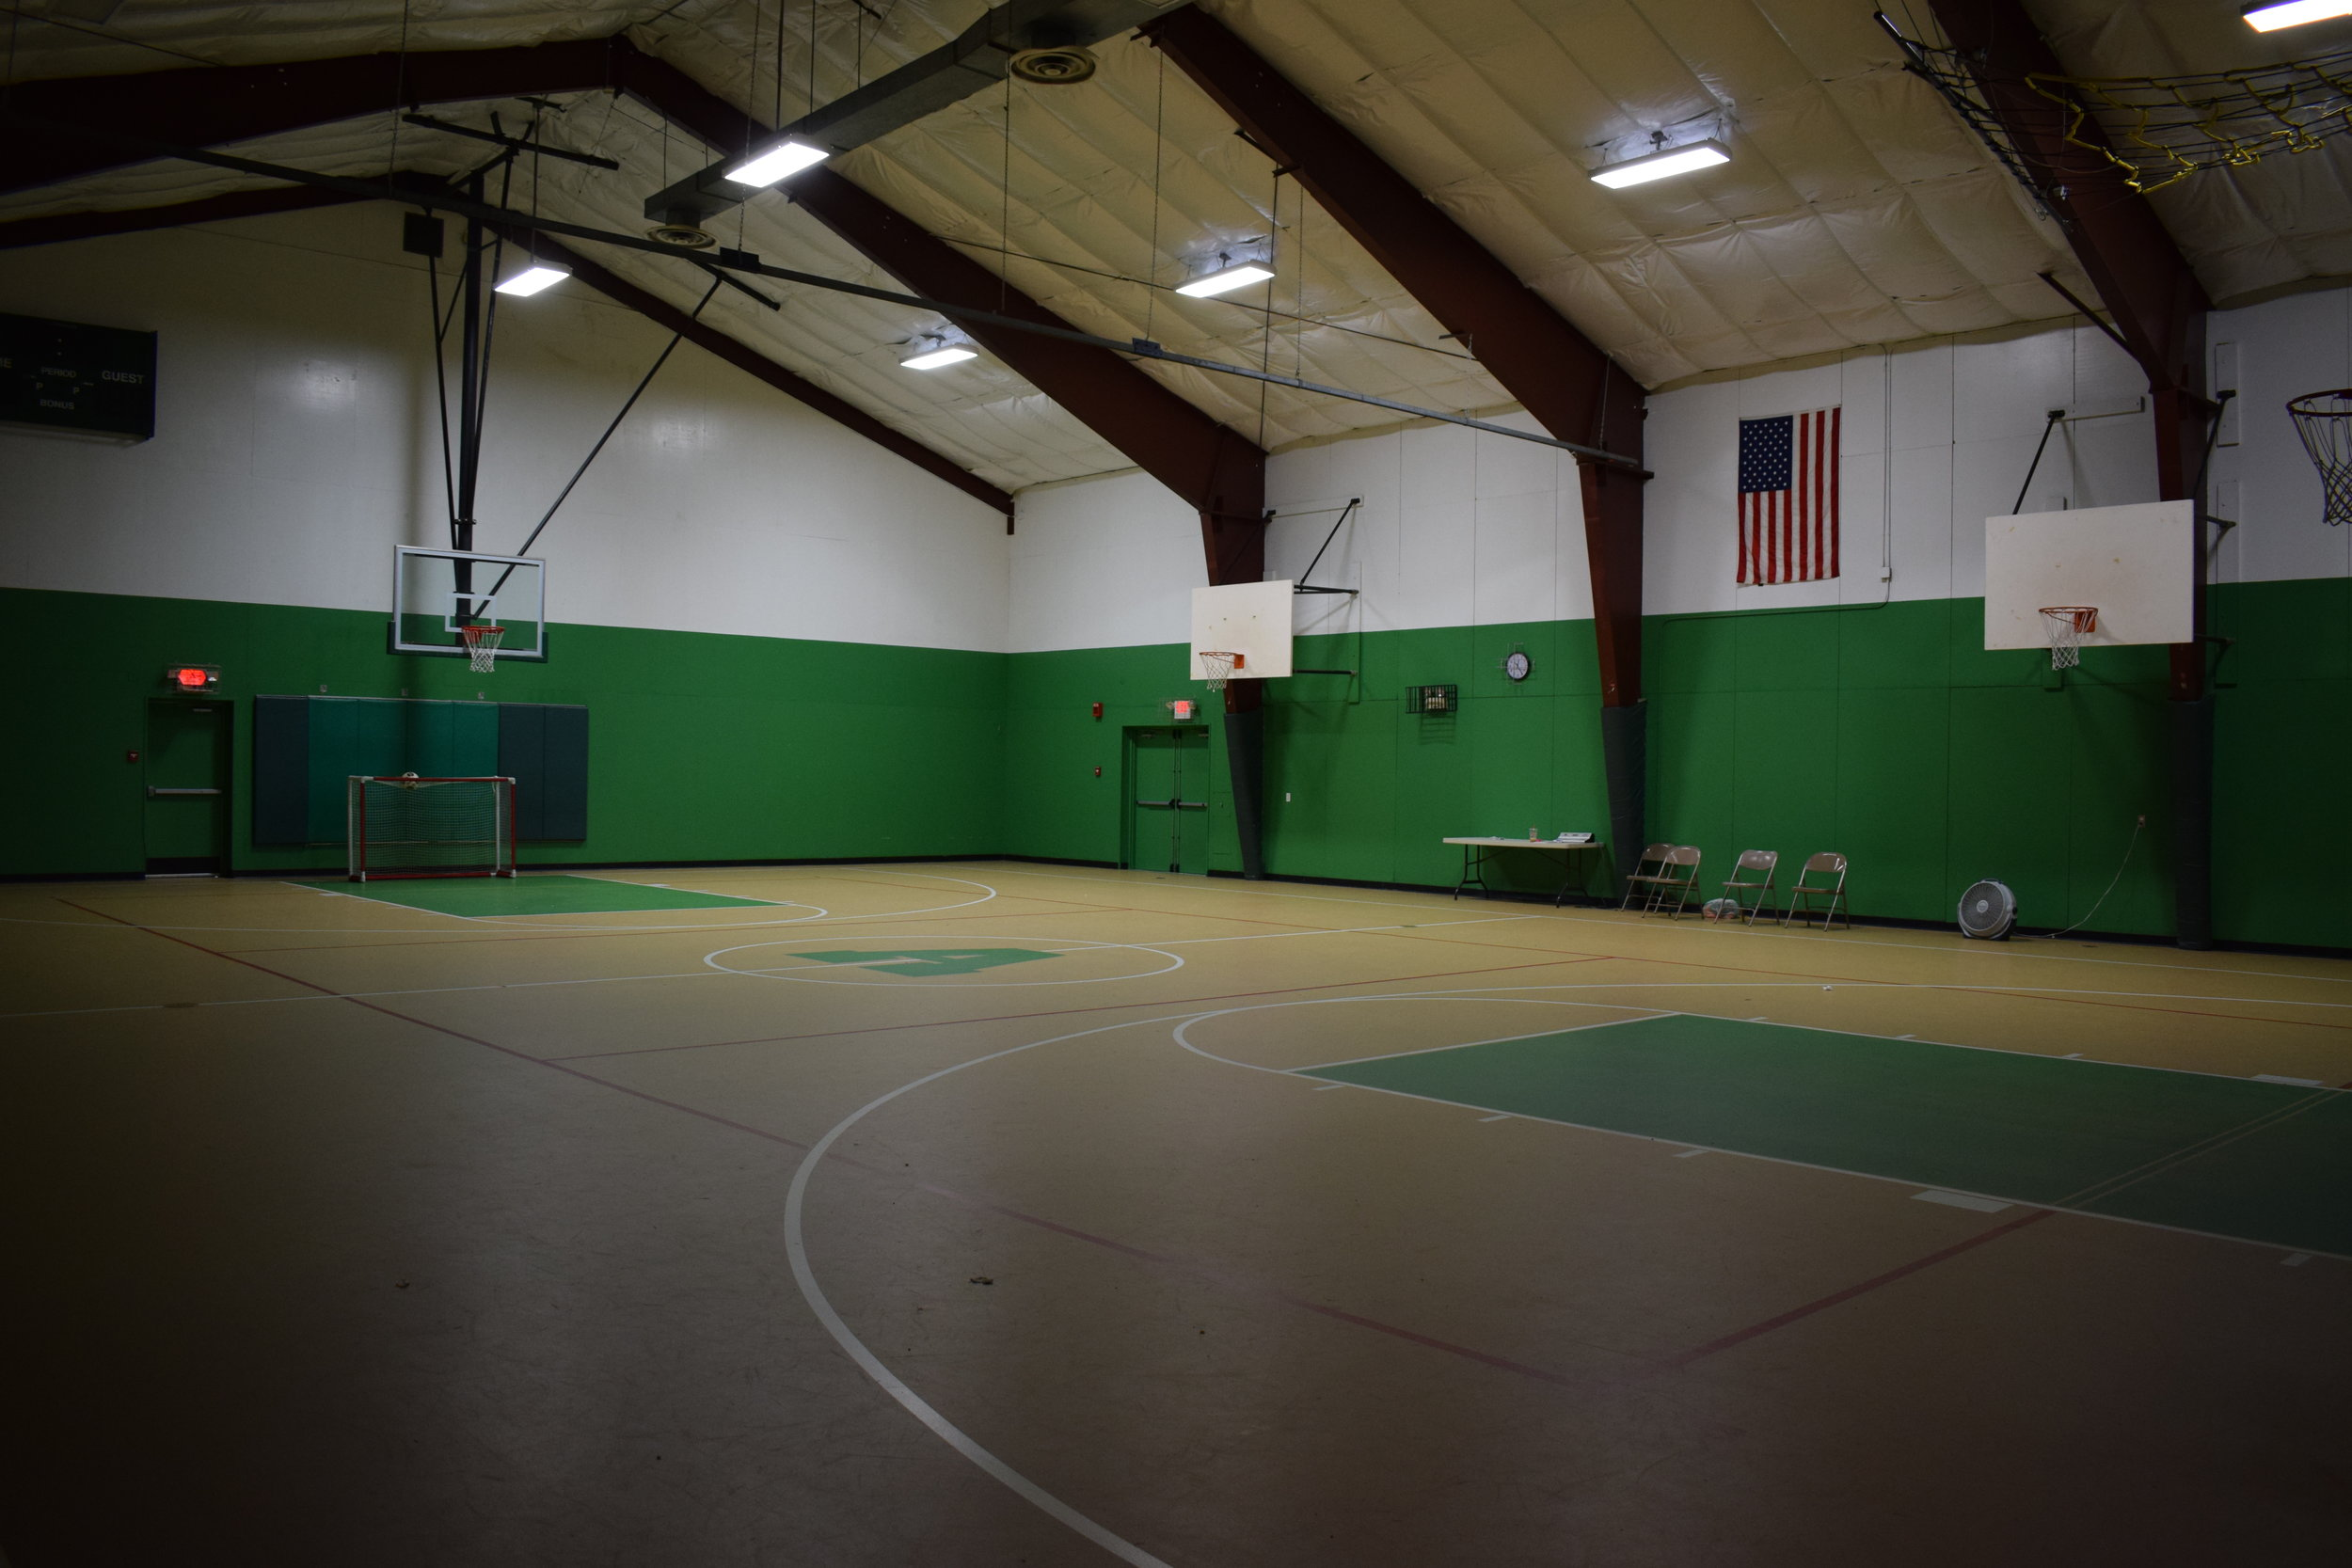 Inside the Harlan K. Simonds Jr. Gymnasium.